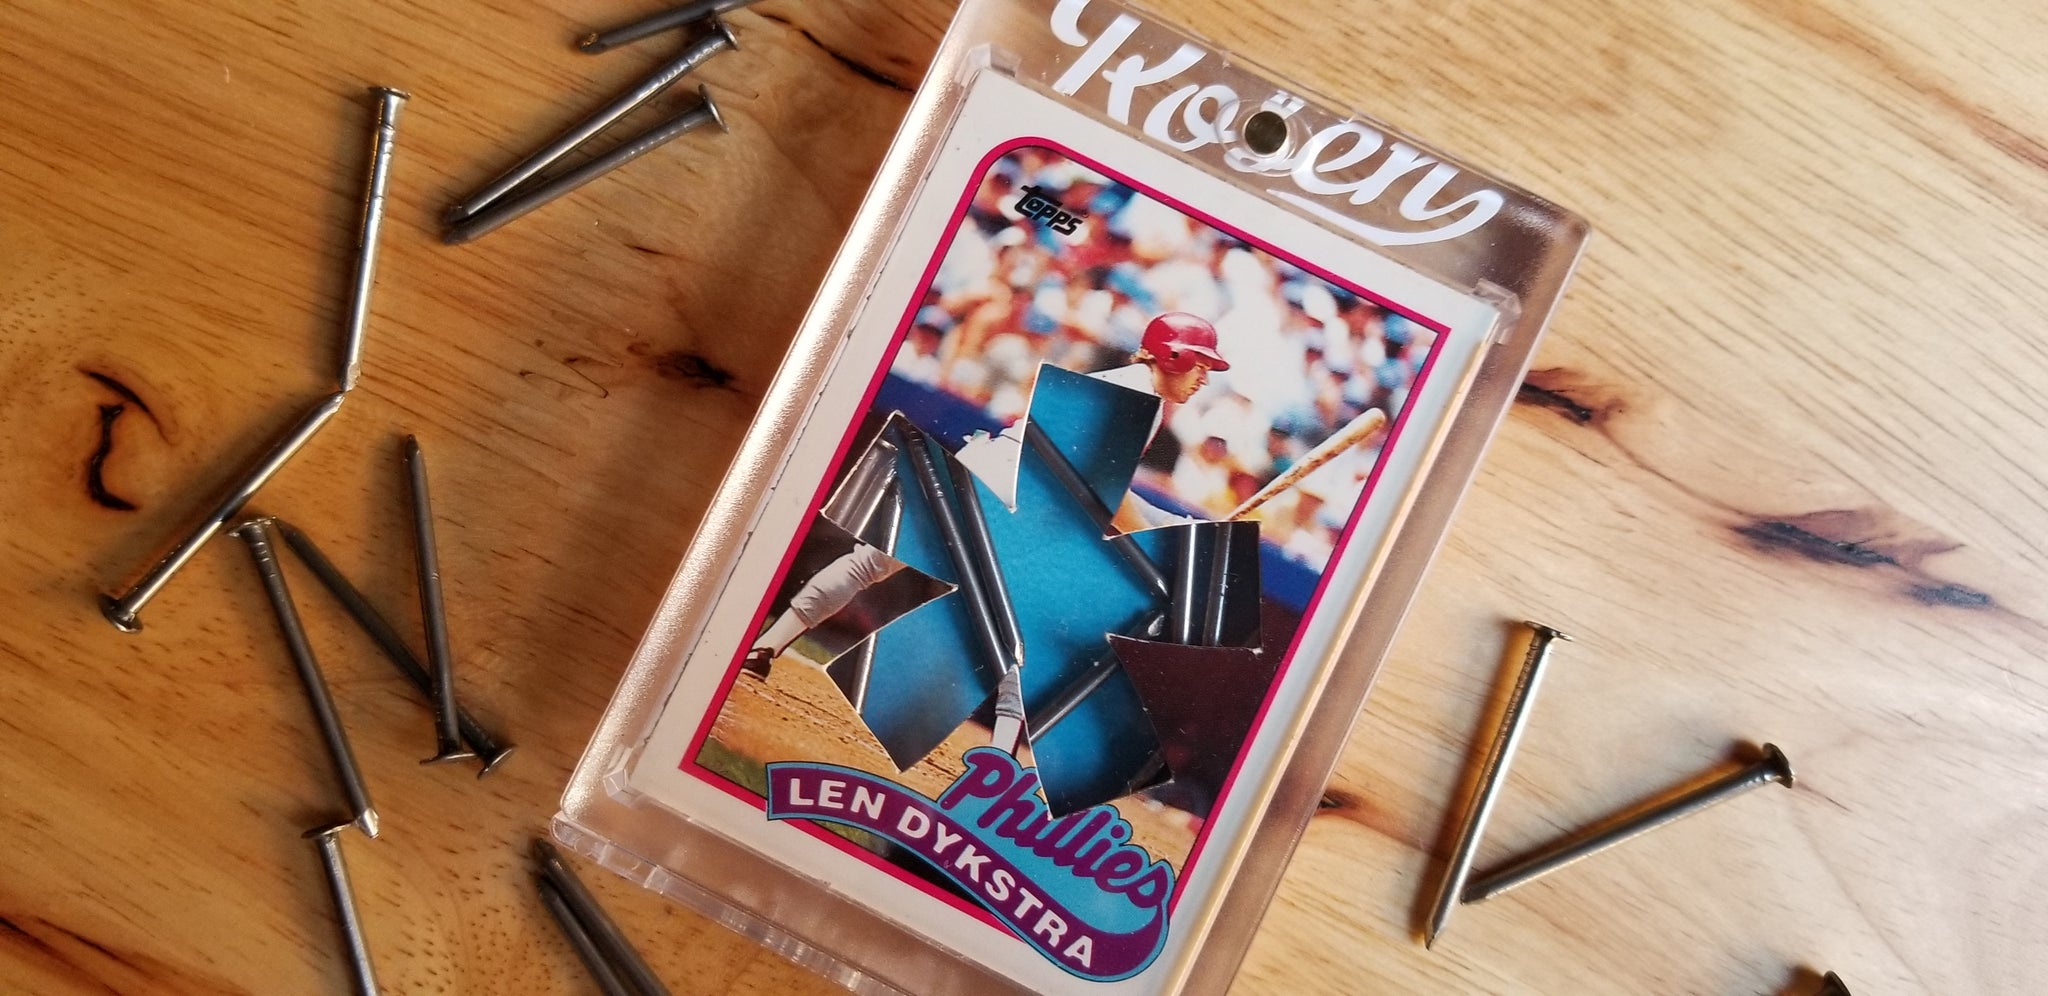 Baseball card art by Matt Rosen - Lenny Dykstra package of Nails